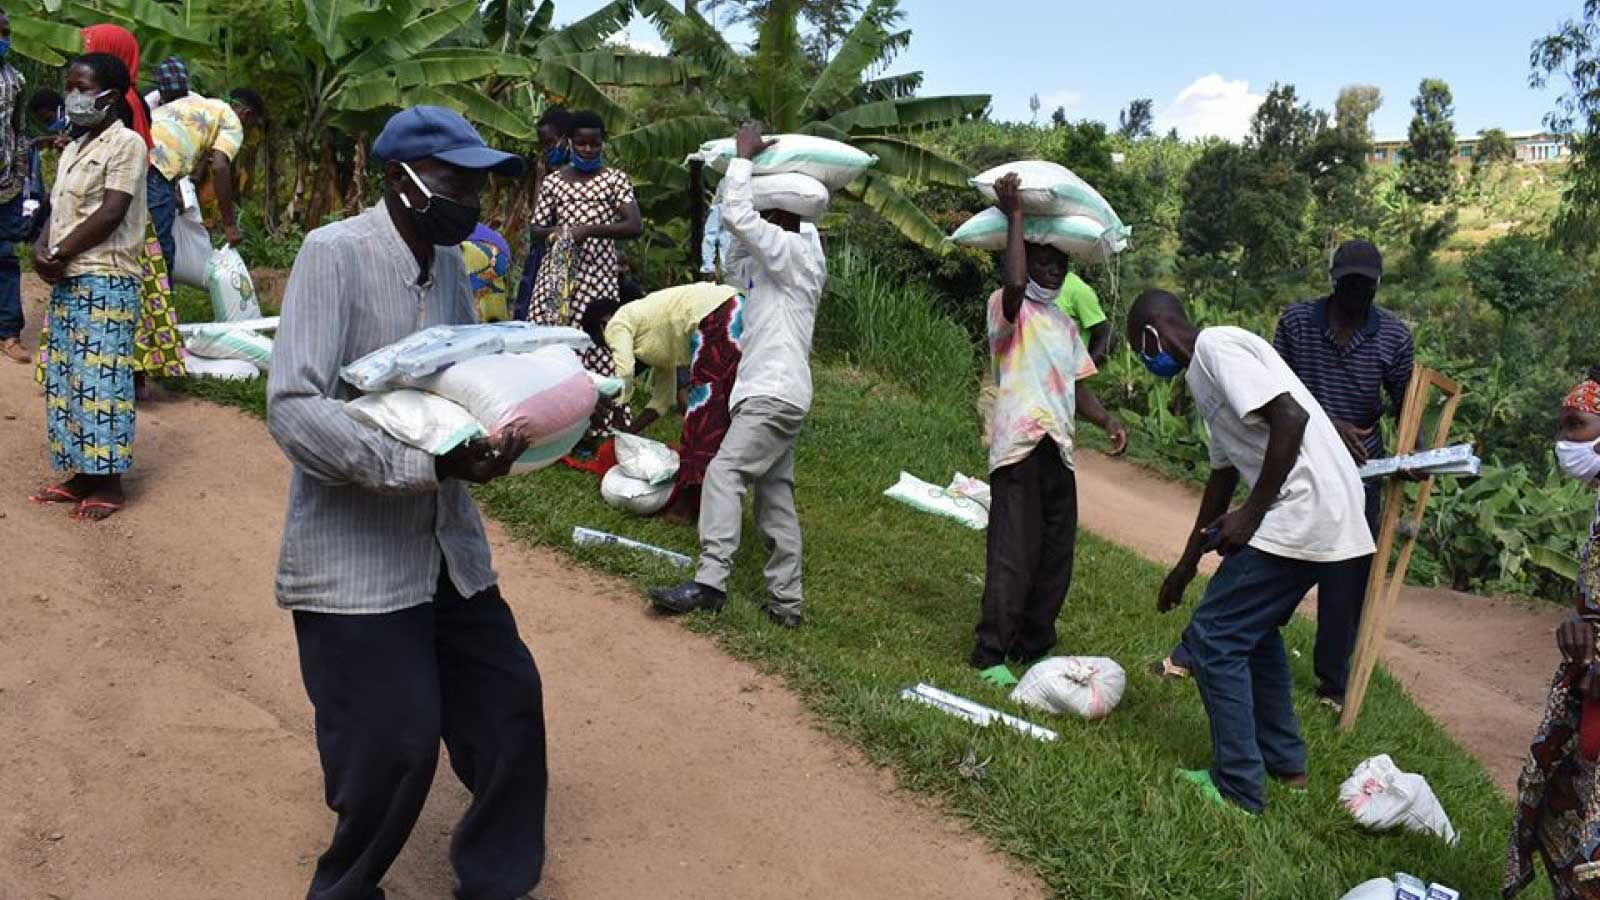 Vulnerable-individuals-in-Rwanda-receive-food-and-flour-from-Humanity- -Inclusion's-team-during-the-COVID-19-crisis